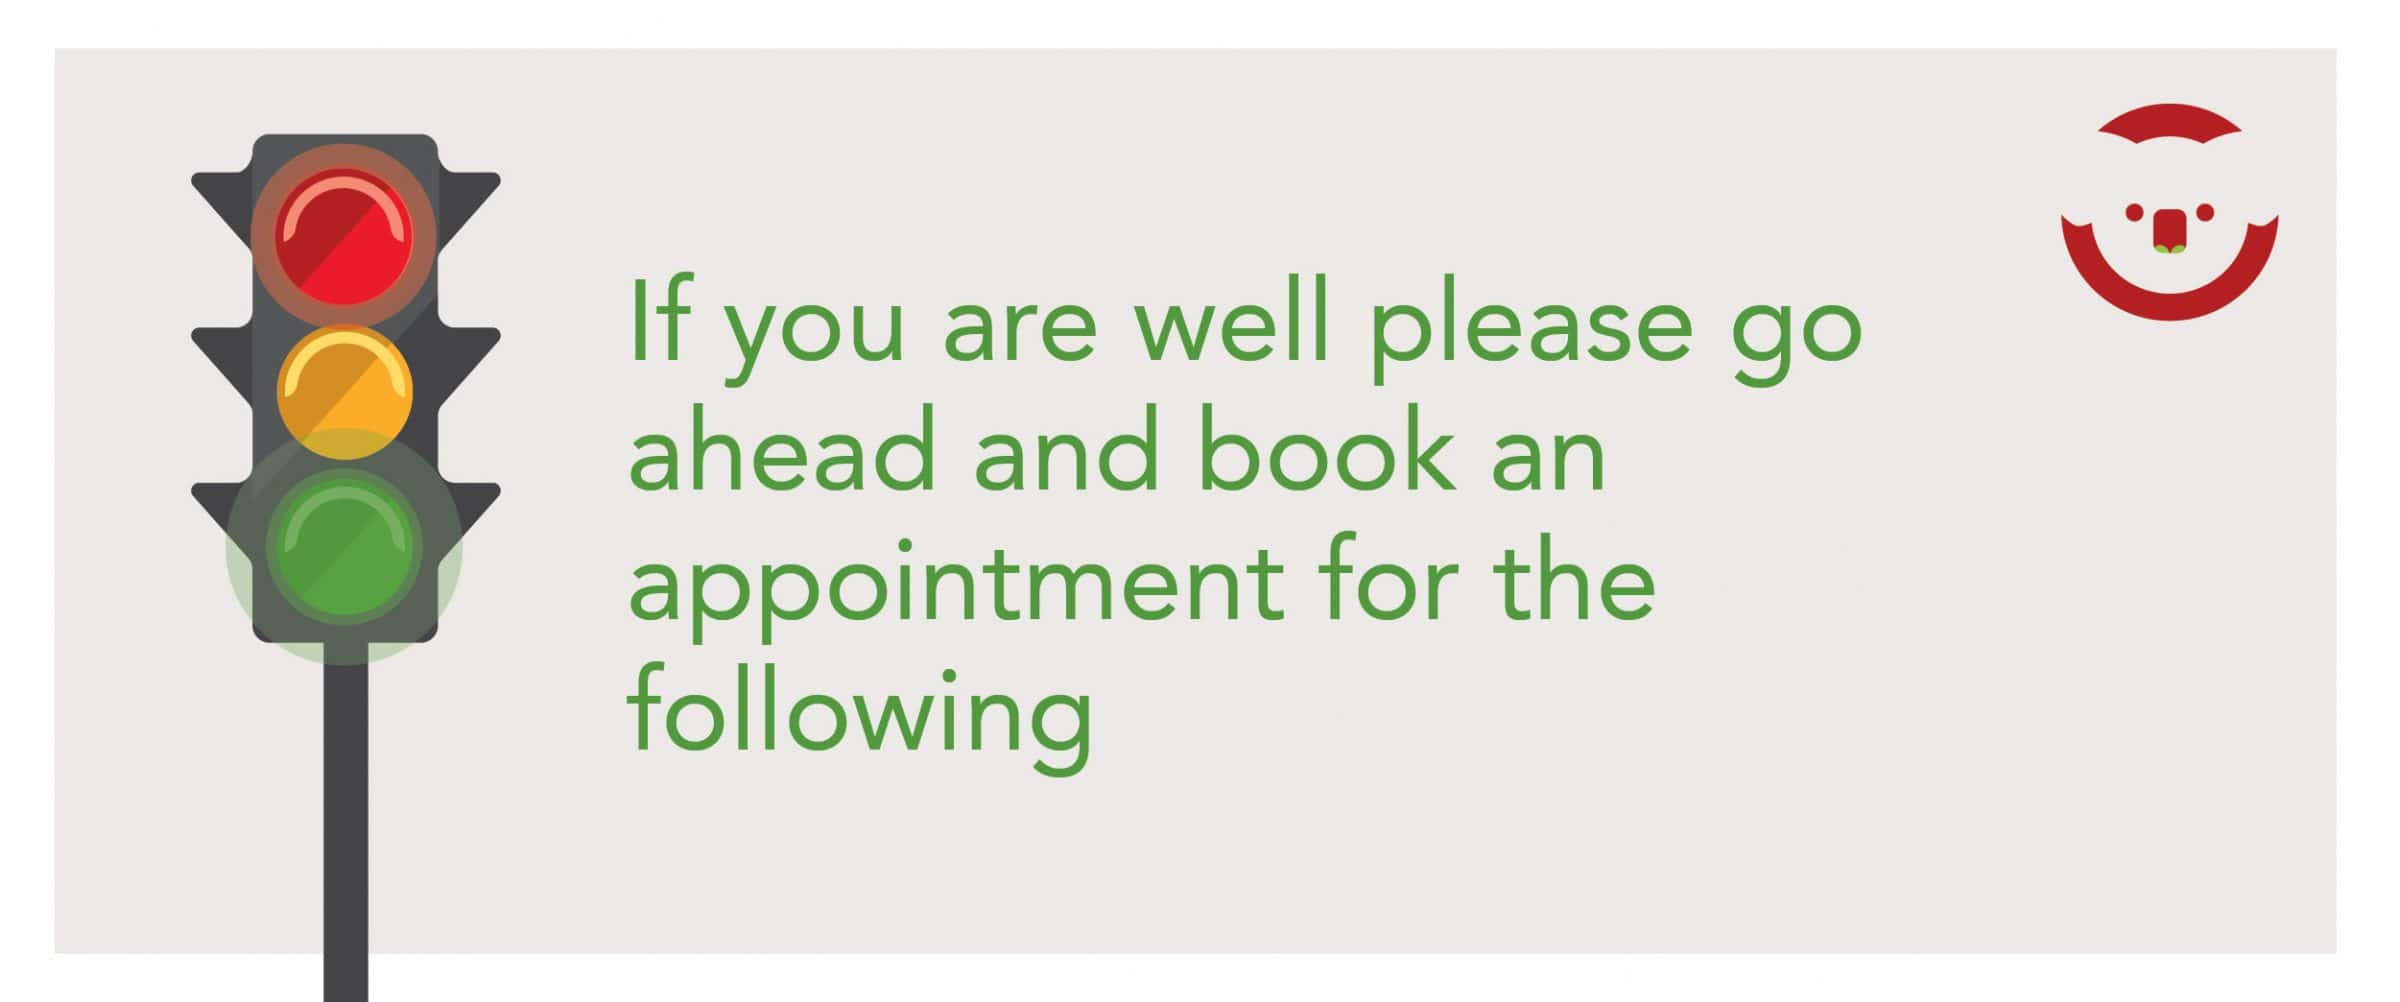 If you are well, book an appointment for the following: